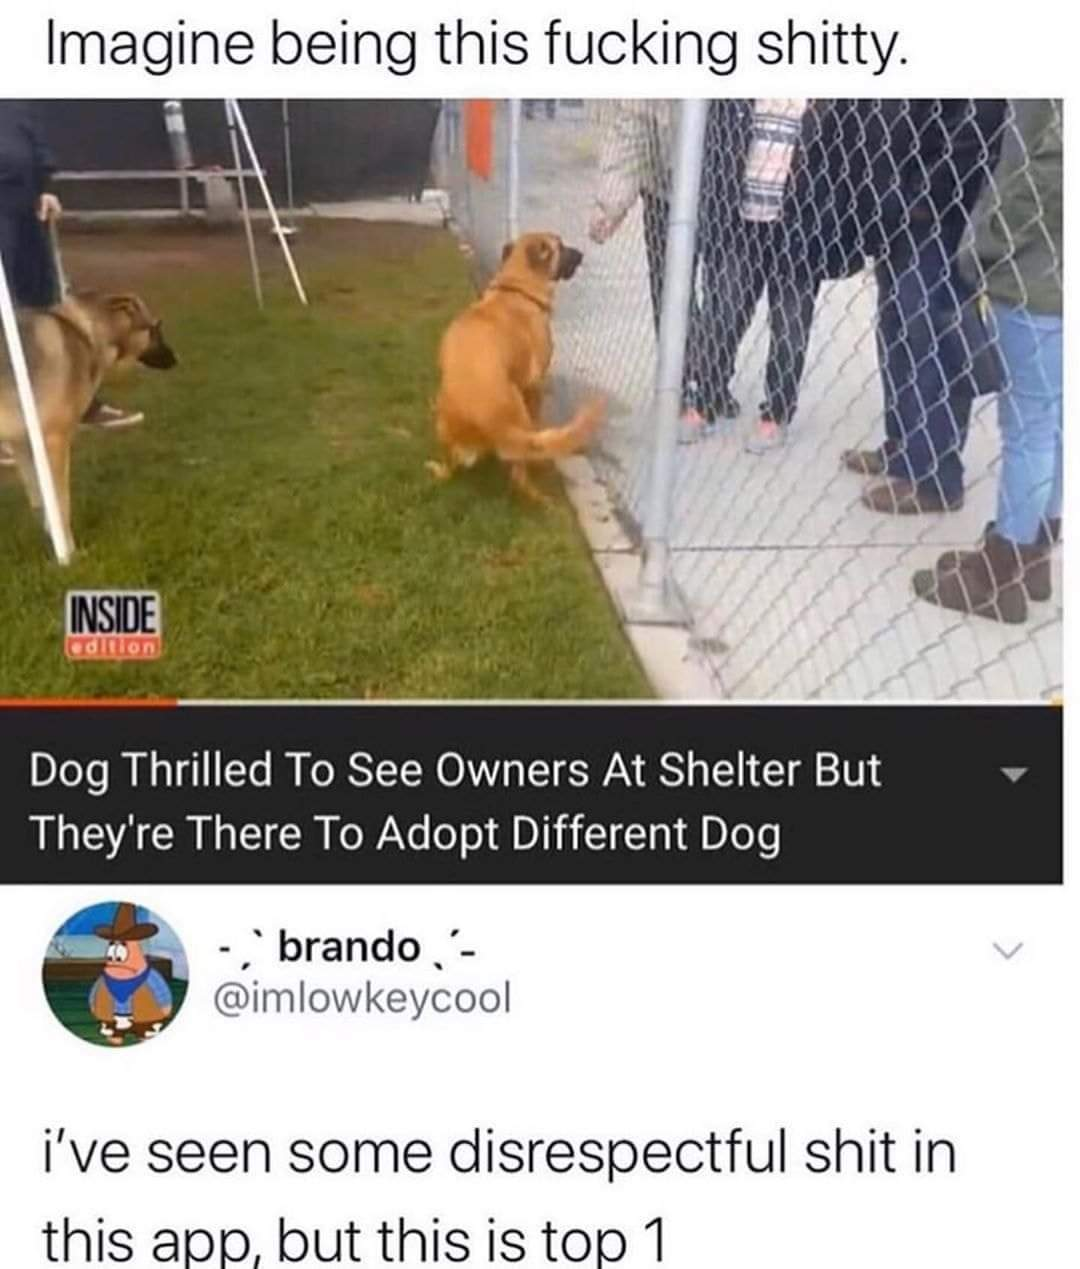 Poor doggo - meme